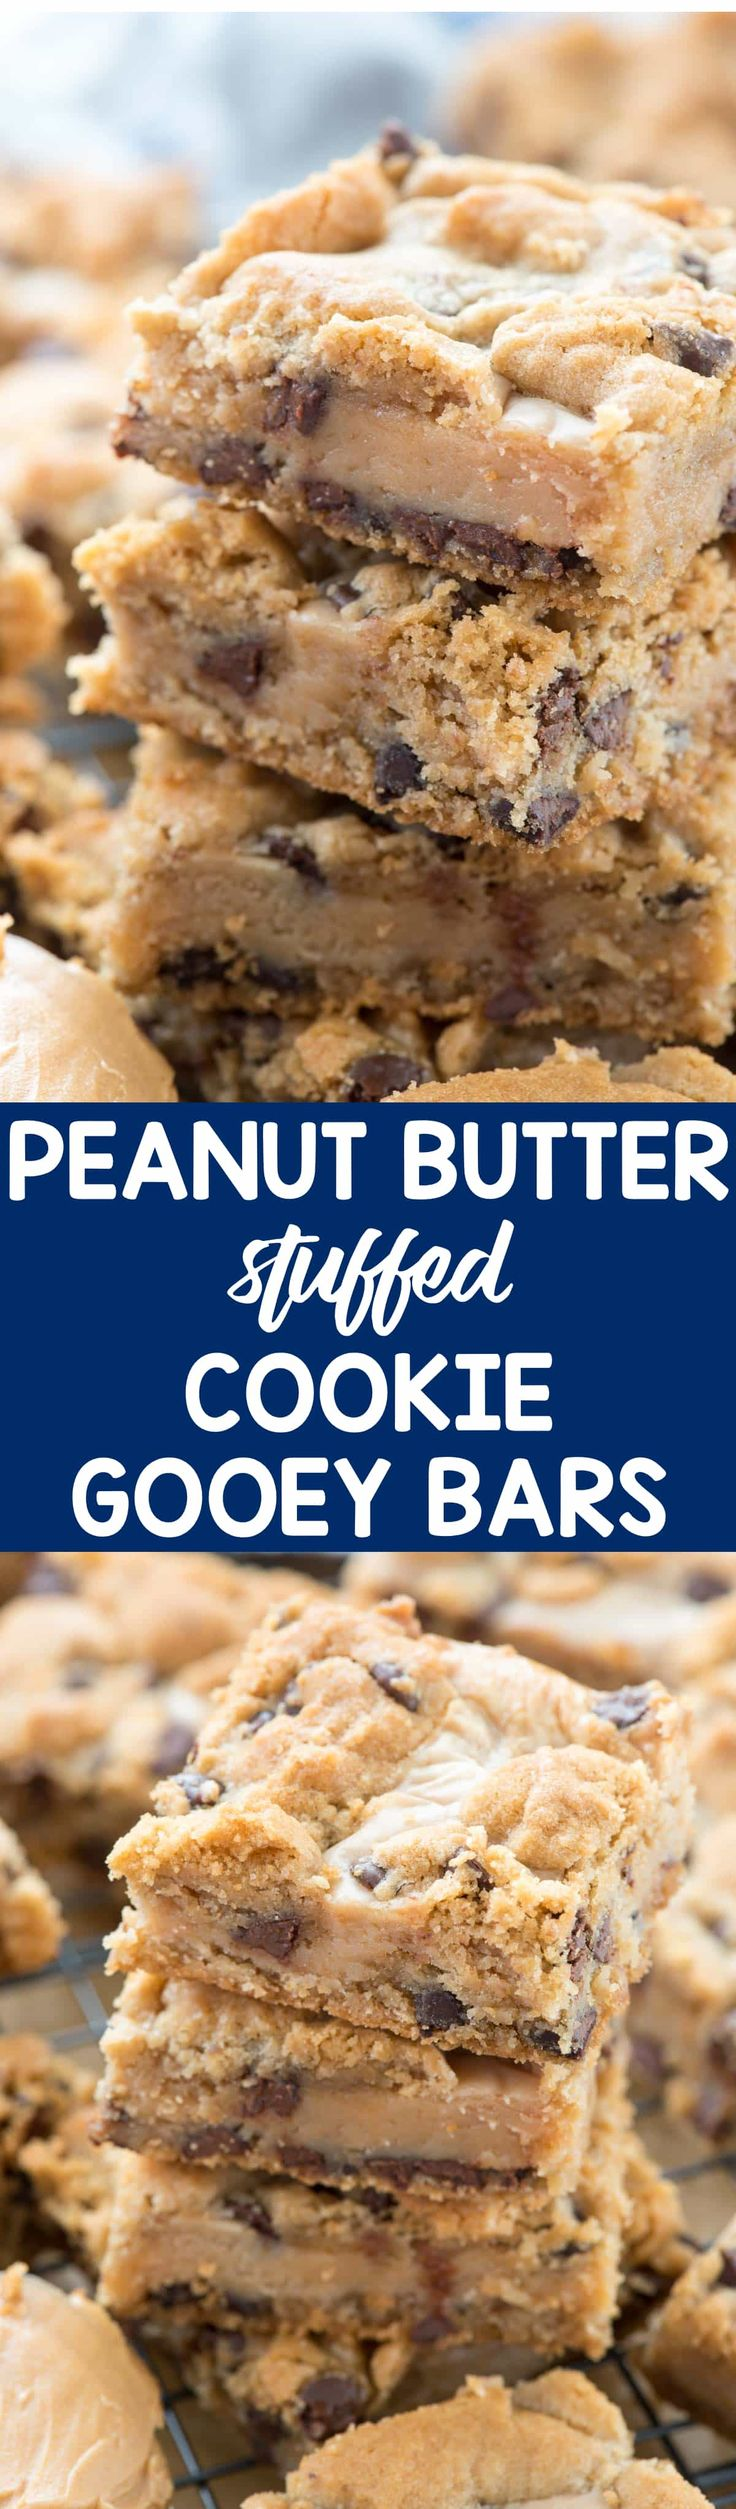 Gooey Peanut Butter Chocolate Chip Cookie Bars - An easy chocolate chip cookie bar stuffed with a gooey peanut butter mixture. This is such an easy recipe and EVERYONE loved them!